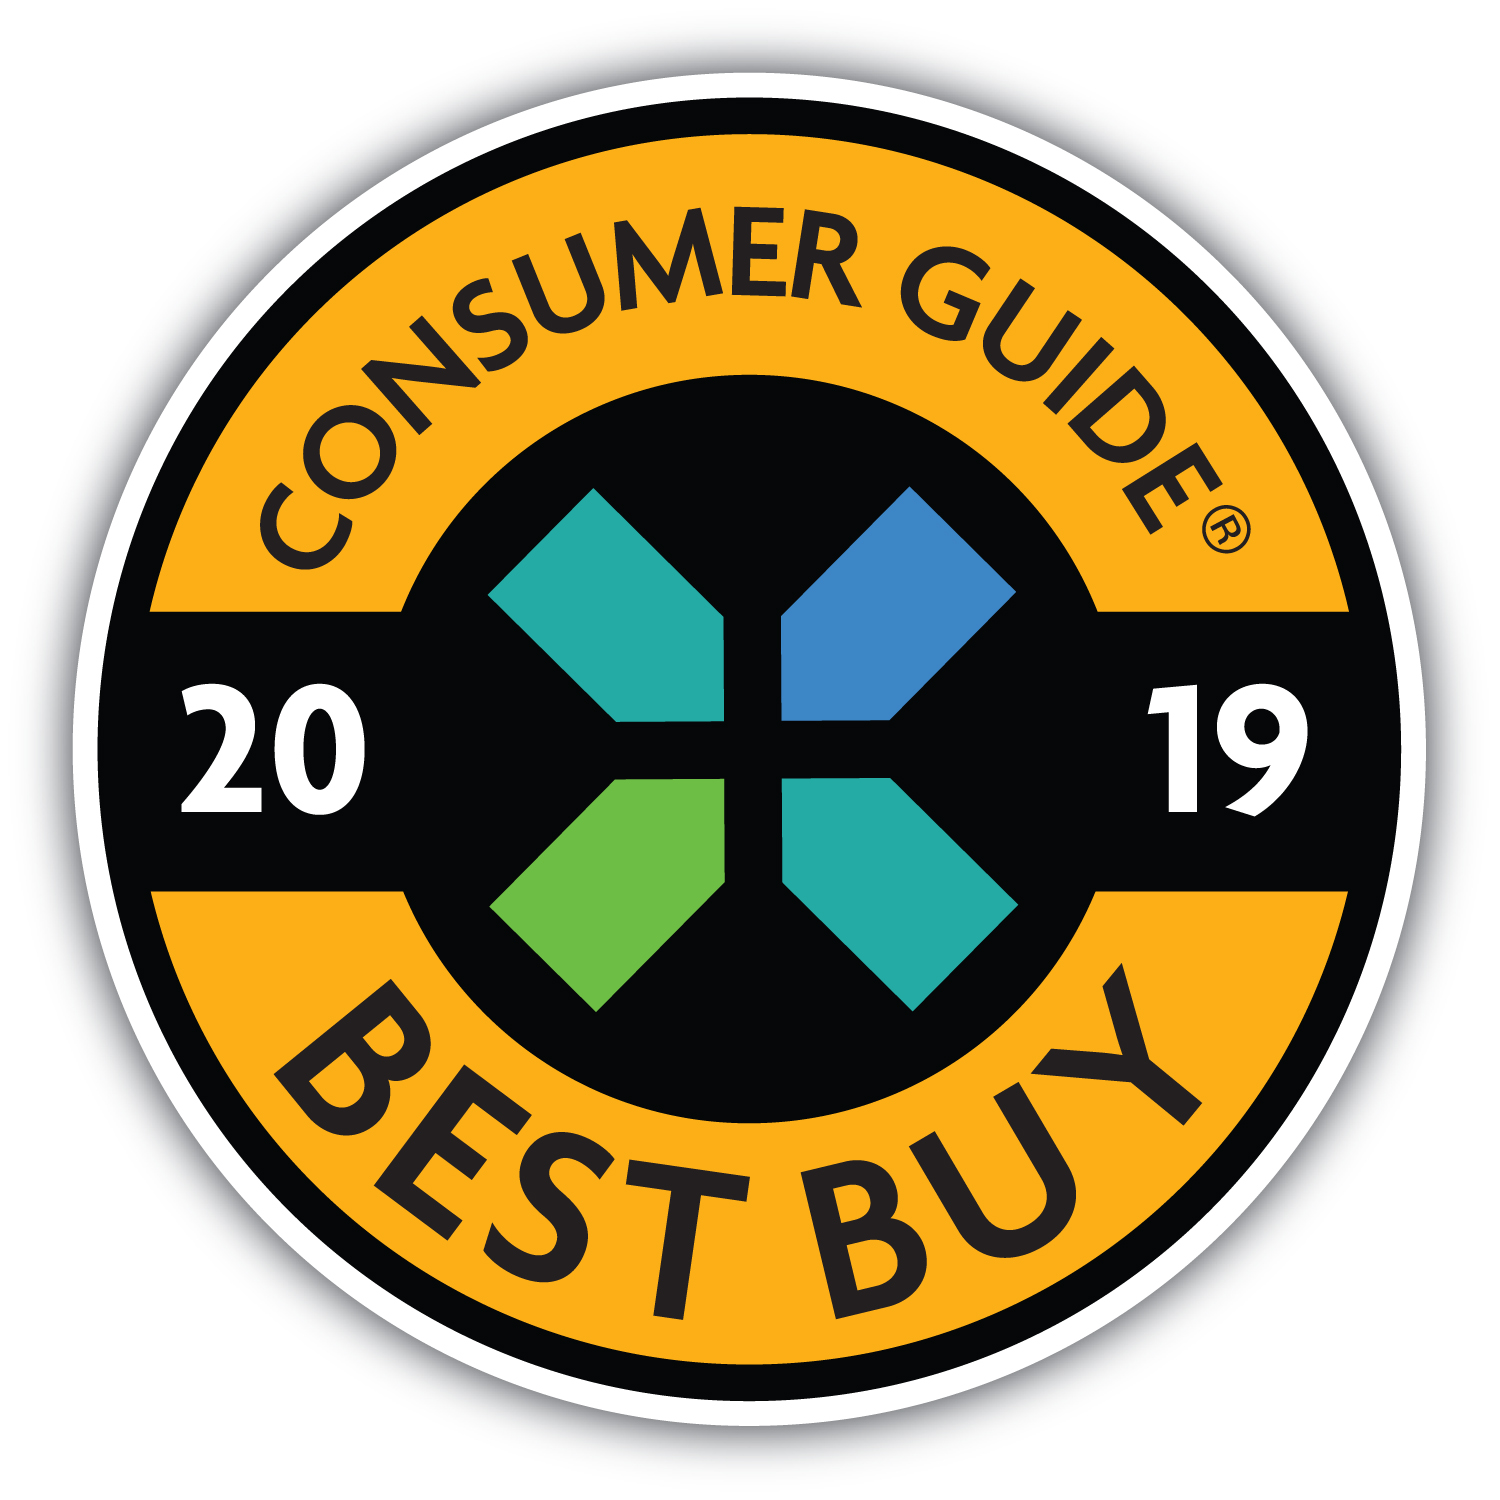 Consumer Guides: Meet The 2019 Consumer Guide Best Buys